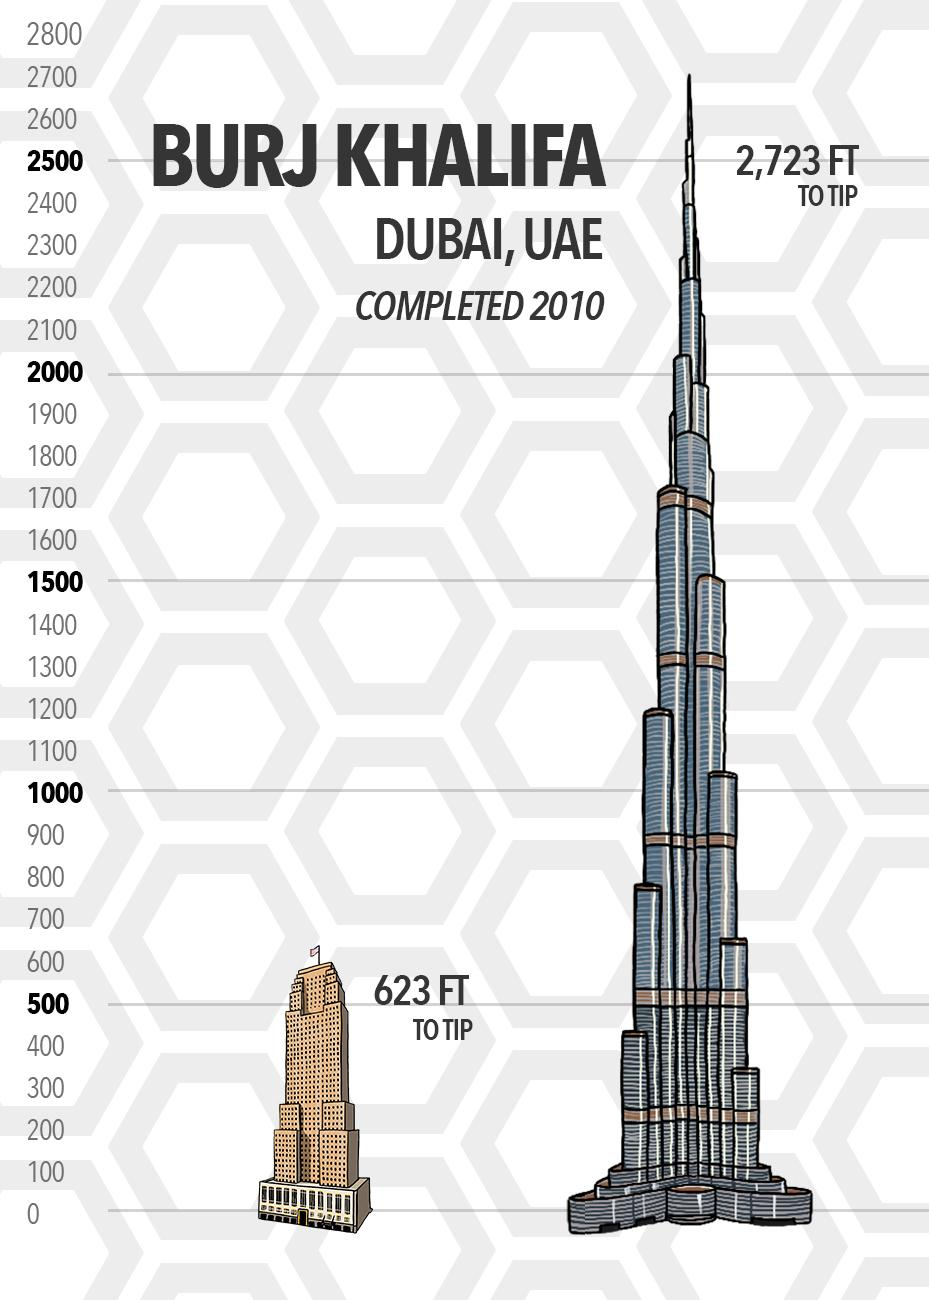 The world's current tallest building, the Burj Khalifa, stands a staggering 2,723 feet tall in Dubai in the United Arab Emirates. That's well over four Carew Towers stacked on top of each other. Burj Khalifa has only been completed since 2010. (Source: SkyscraperCenter.com) / Image: Phil Armstrong // Published: 5.15.19